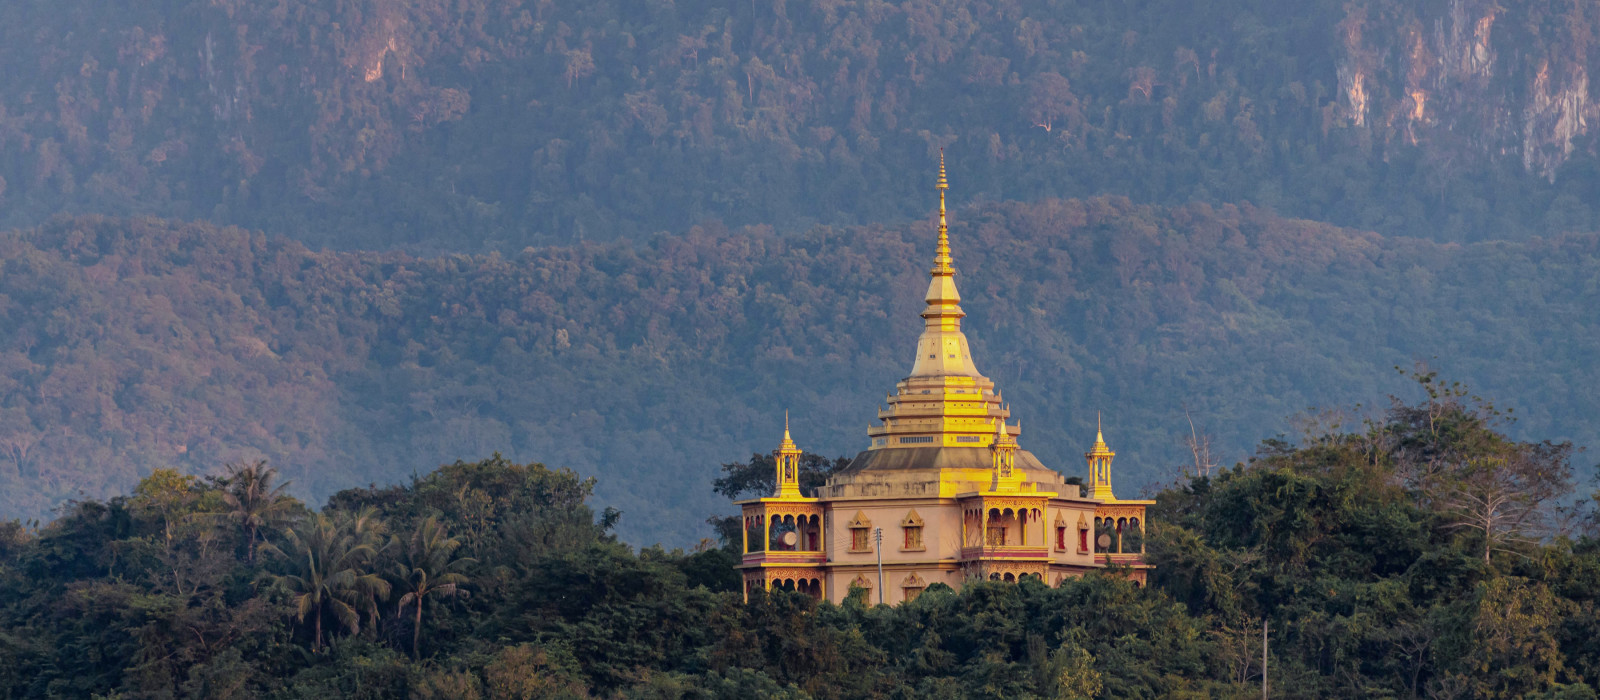 Beautiful Buddhist temple on the hill around with forest and big mountain background, Wat Pa Phon Phao at Luang Prabang, Laos, Asia